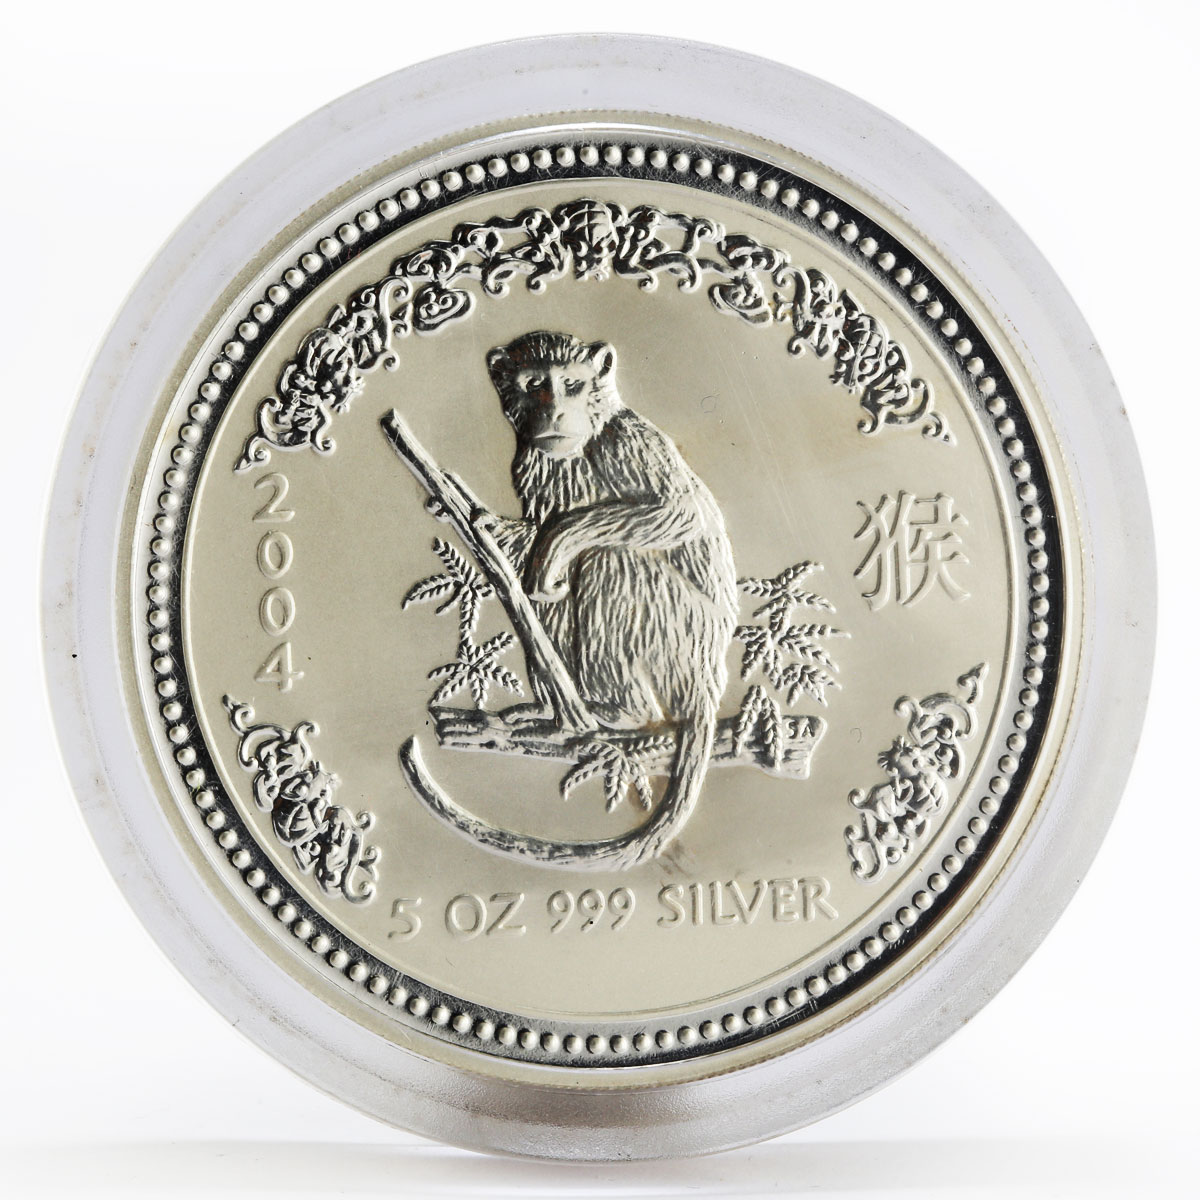 Australia 8 dollars Year of the Monkey Lunar Series I silver coin 2004